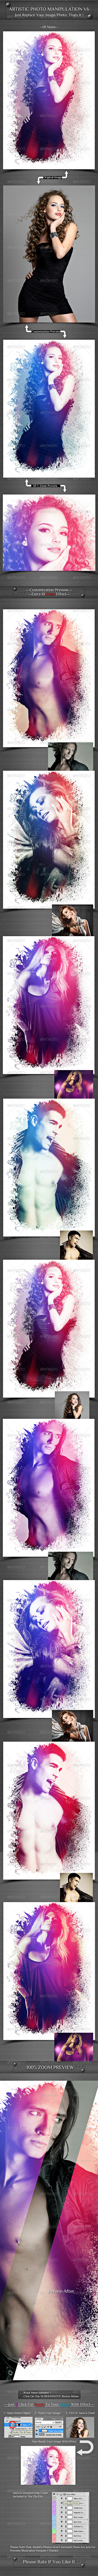 GraphicRiver Artistic Photo Manipulation V6 8584160